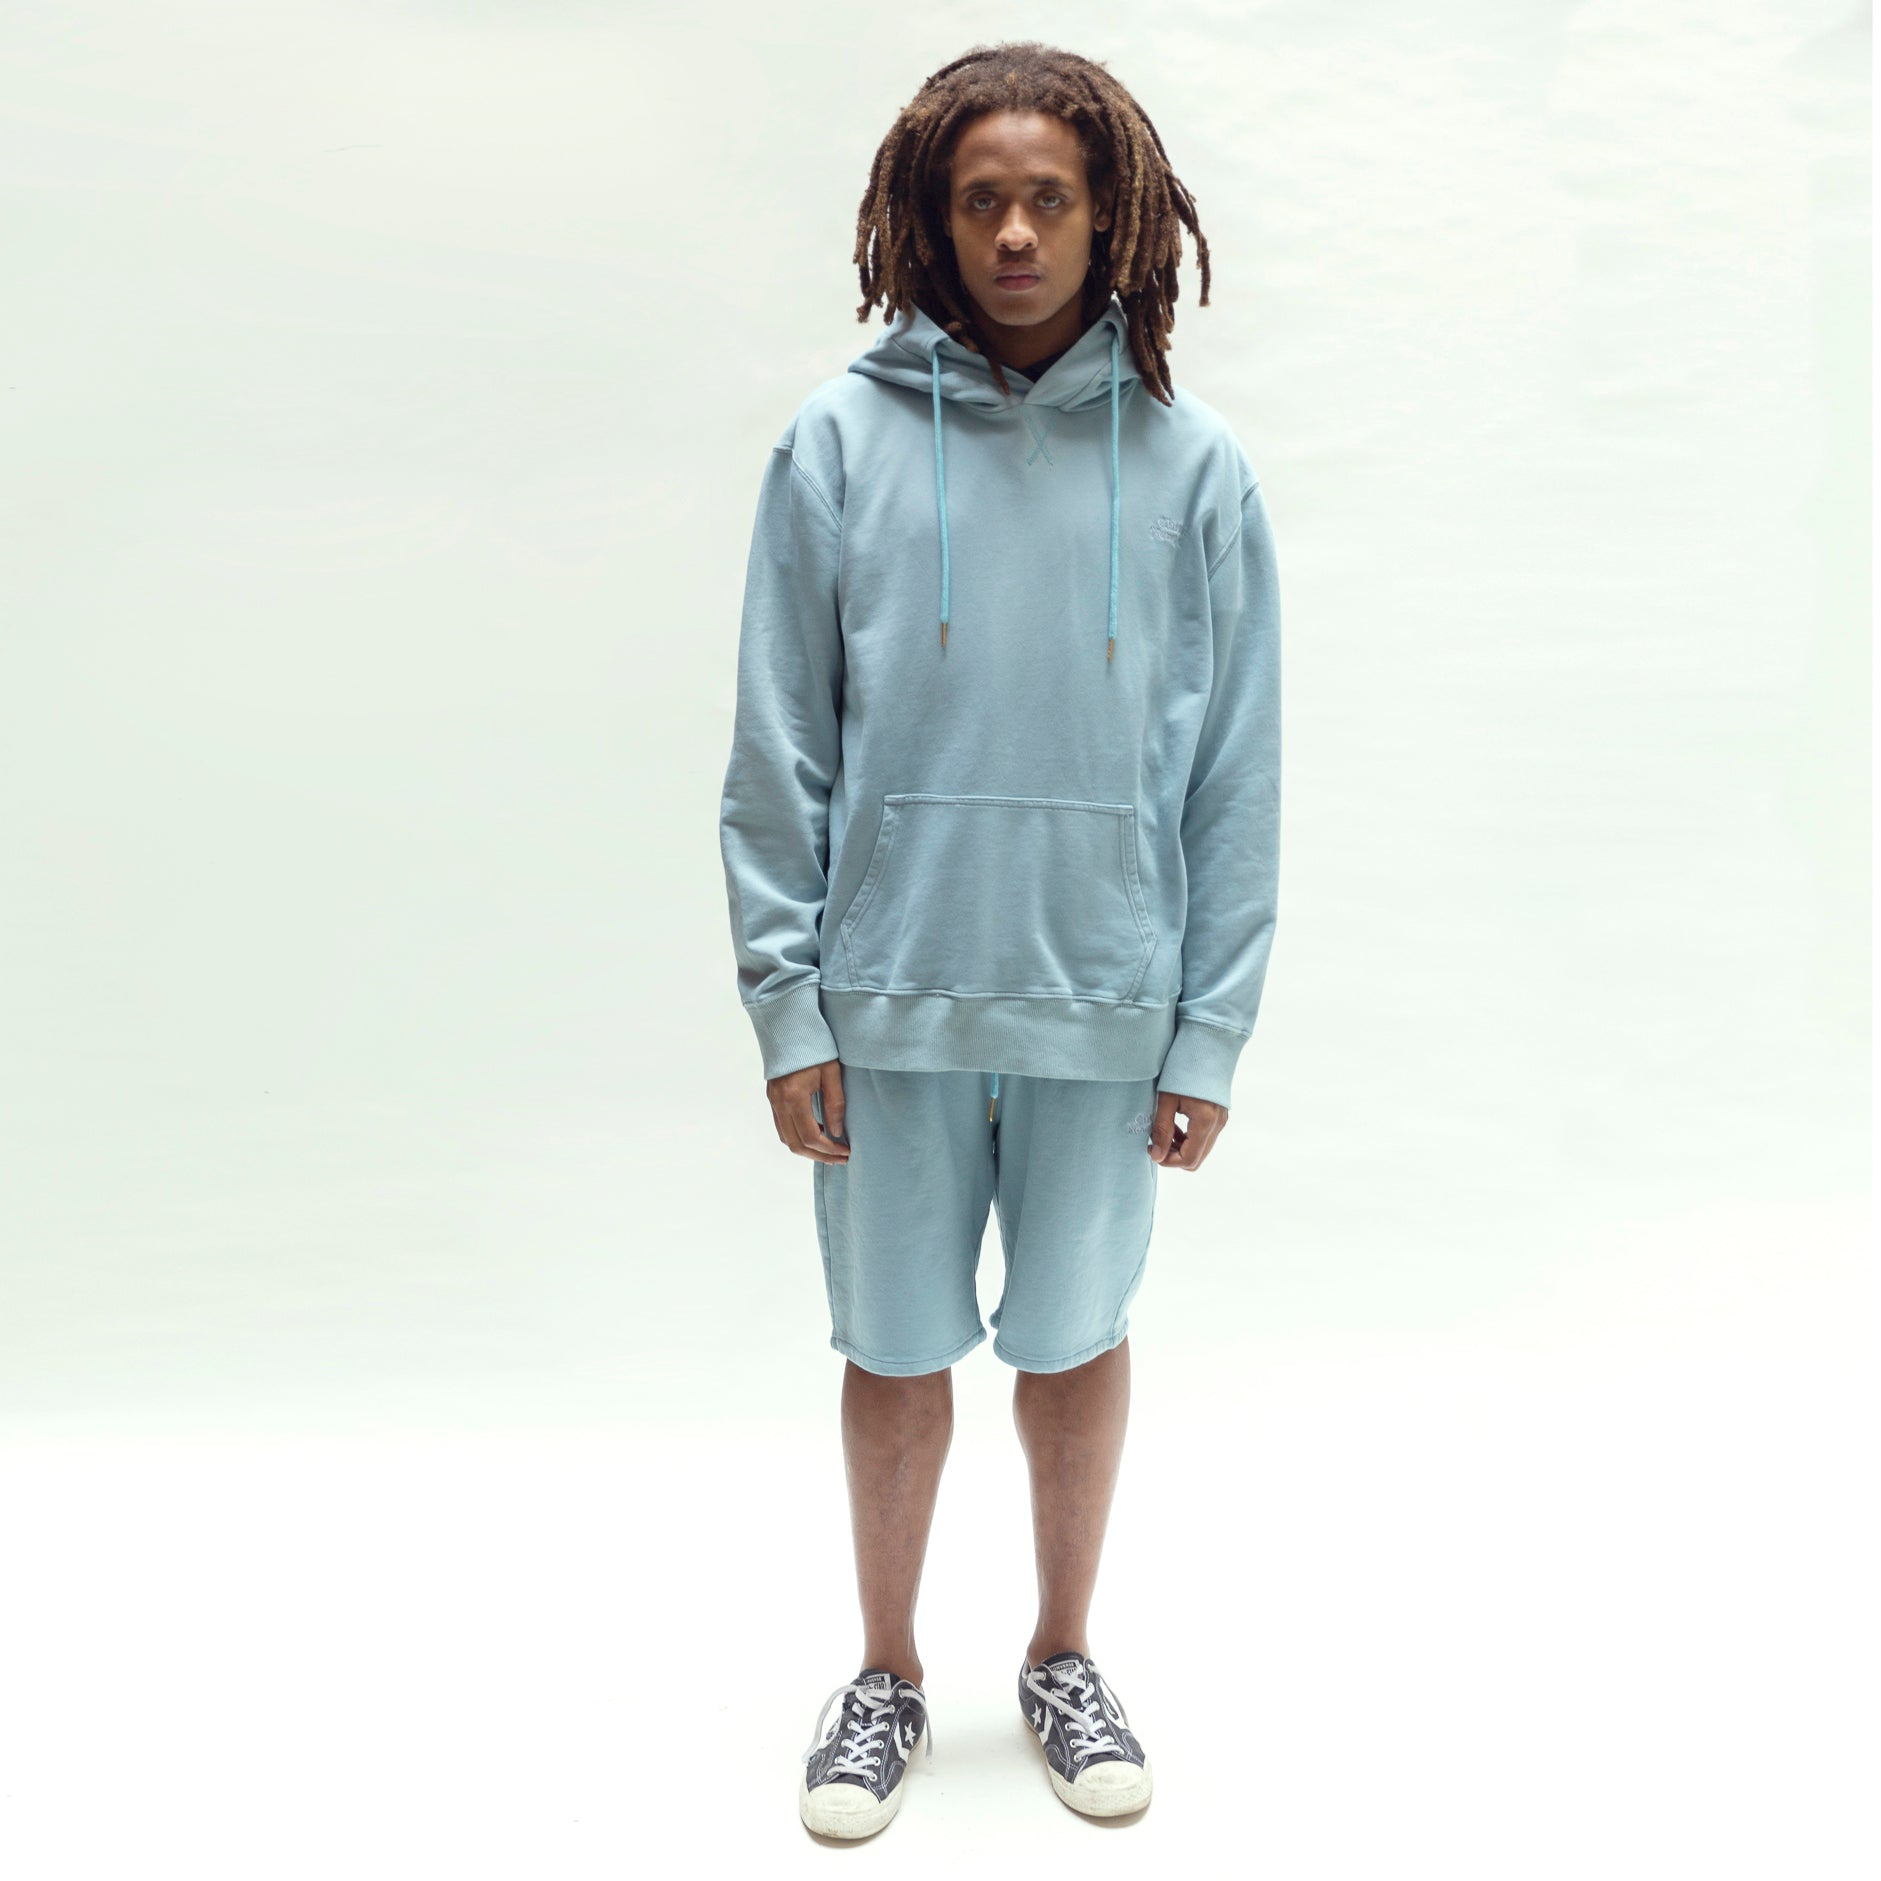 Load image into Gallery viewer, Garment dye Classic logo French Terry sweatshorts_Washed Blue